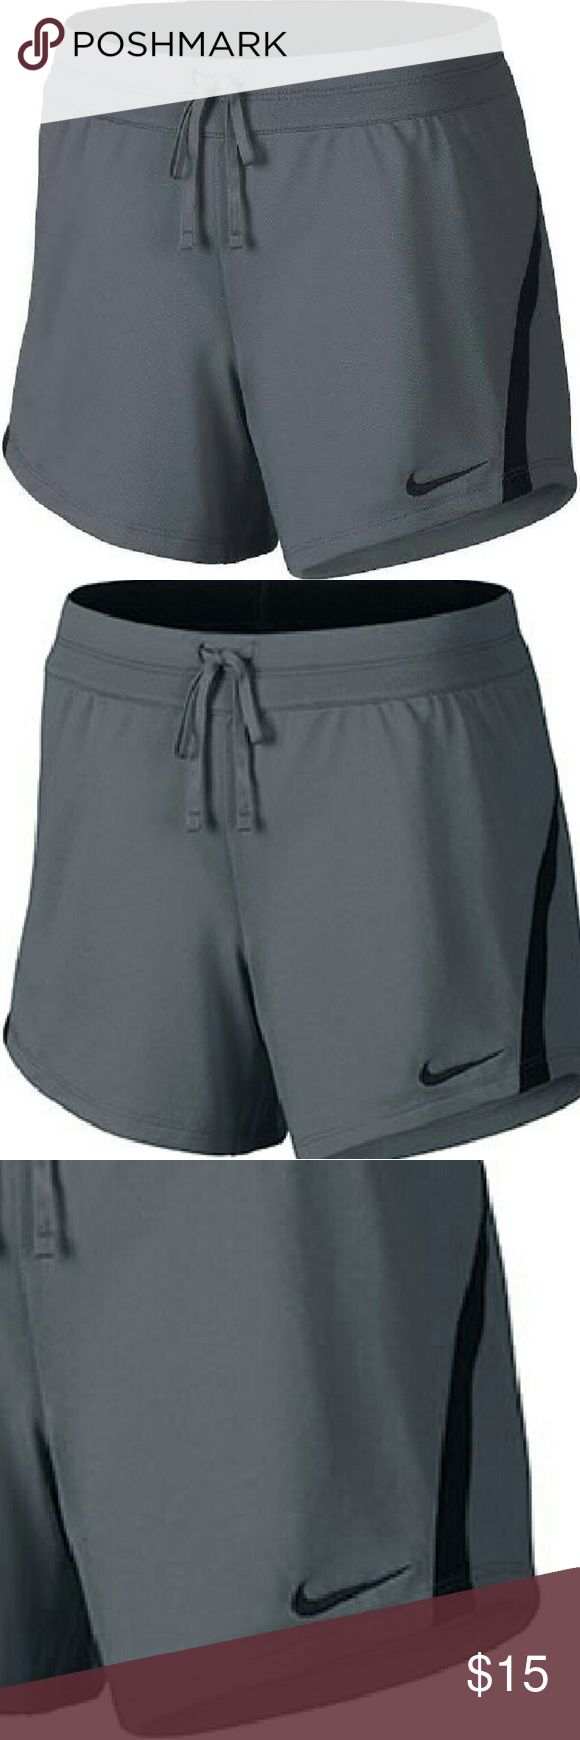 Nwt Women's Nike shorts This is a new pair of women's Nike shorts in grey and black Nike Shorts